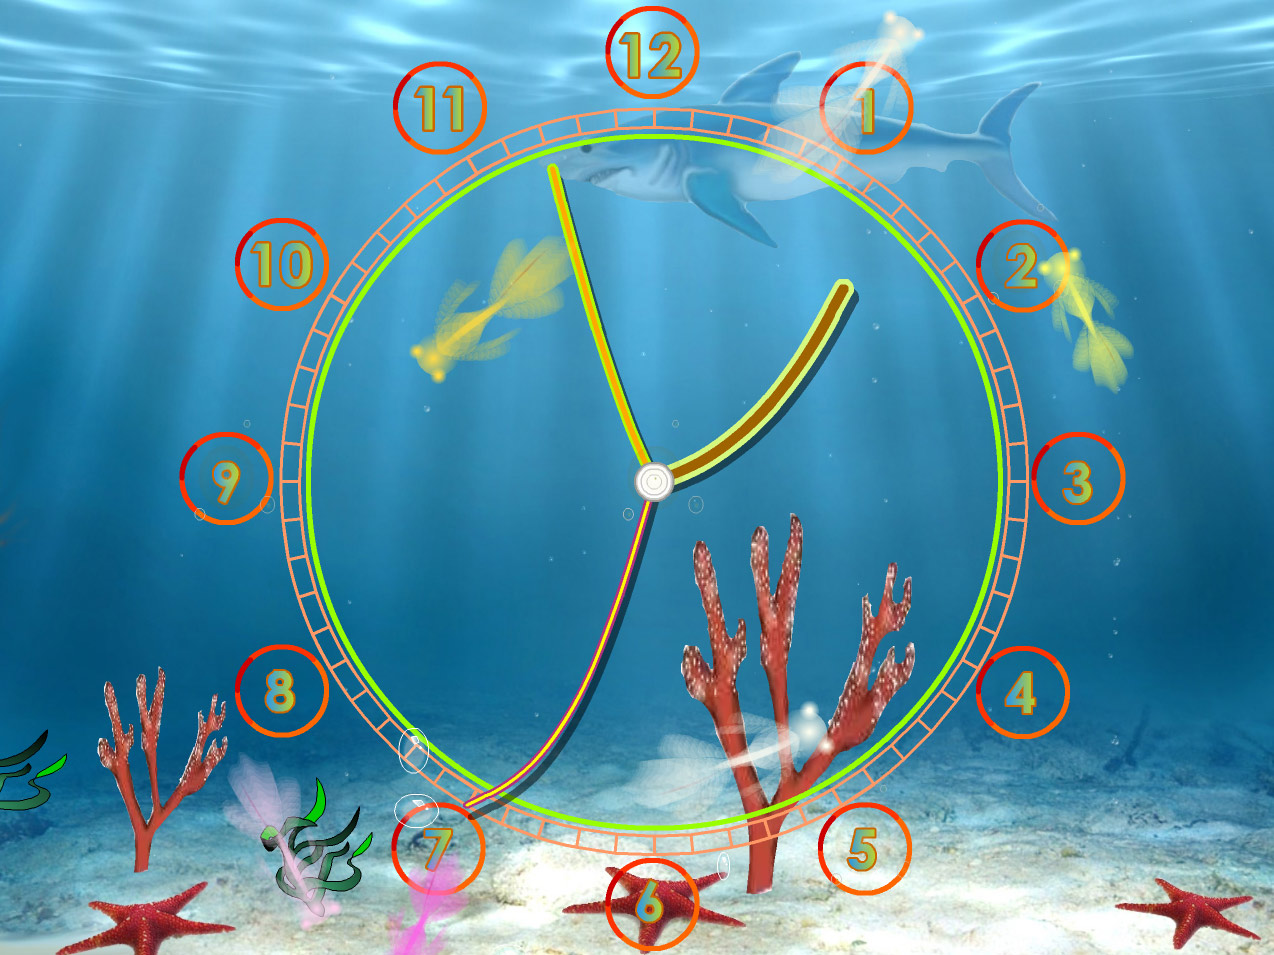 Fish aquarium live wallpaper - Aquarium Clock Screensaver Even Aquarium Fishes Want To Know The